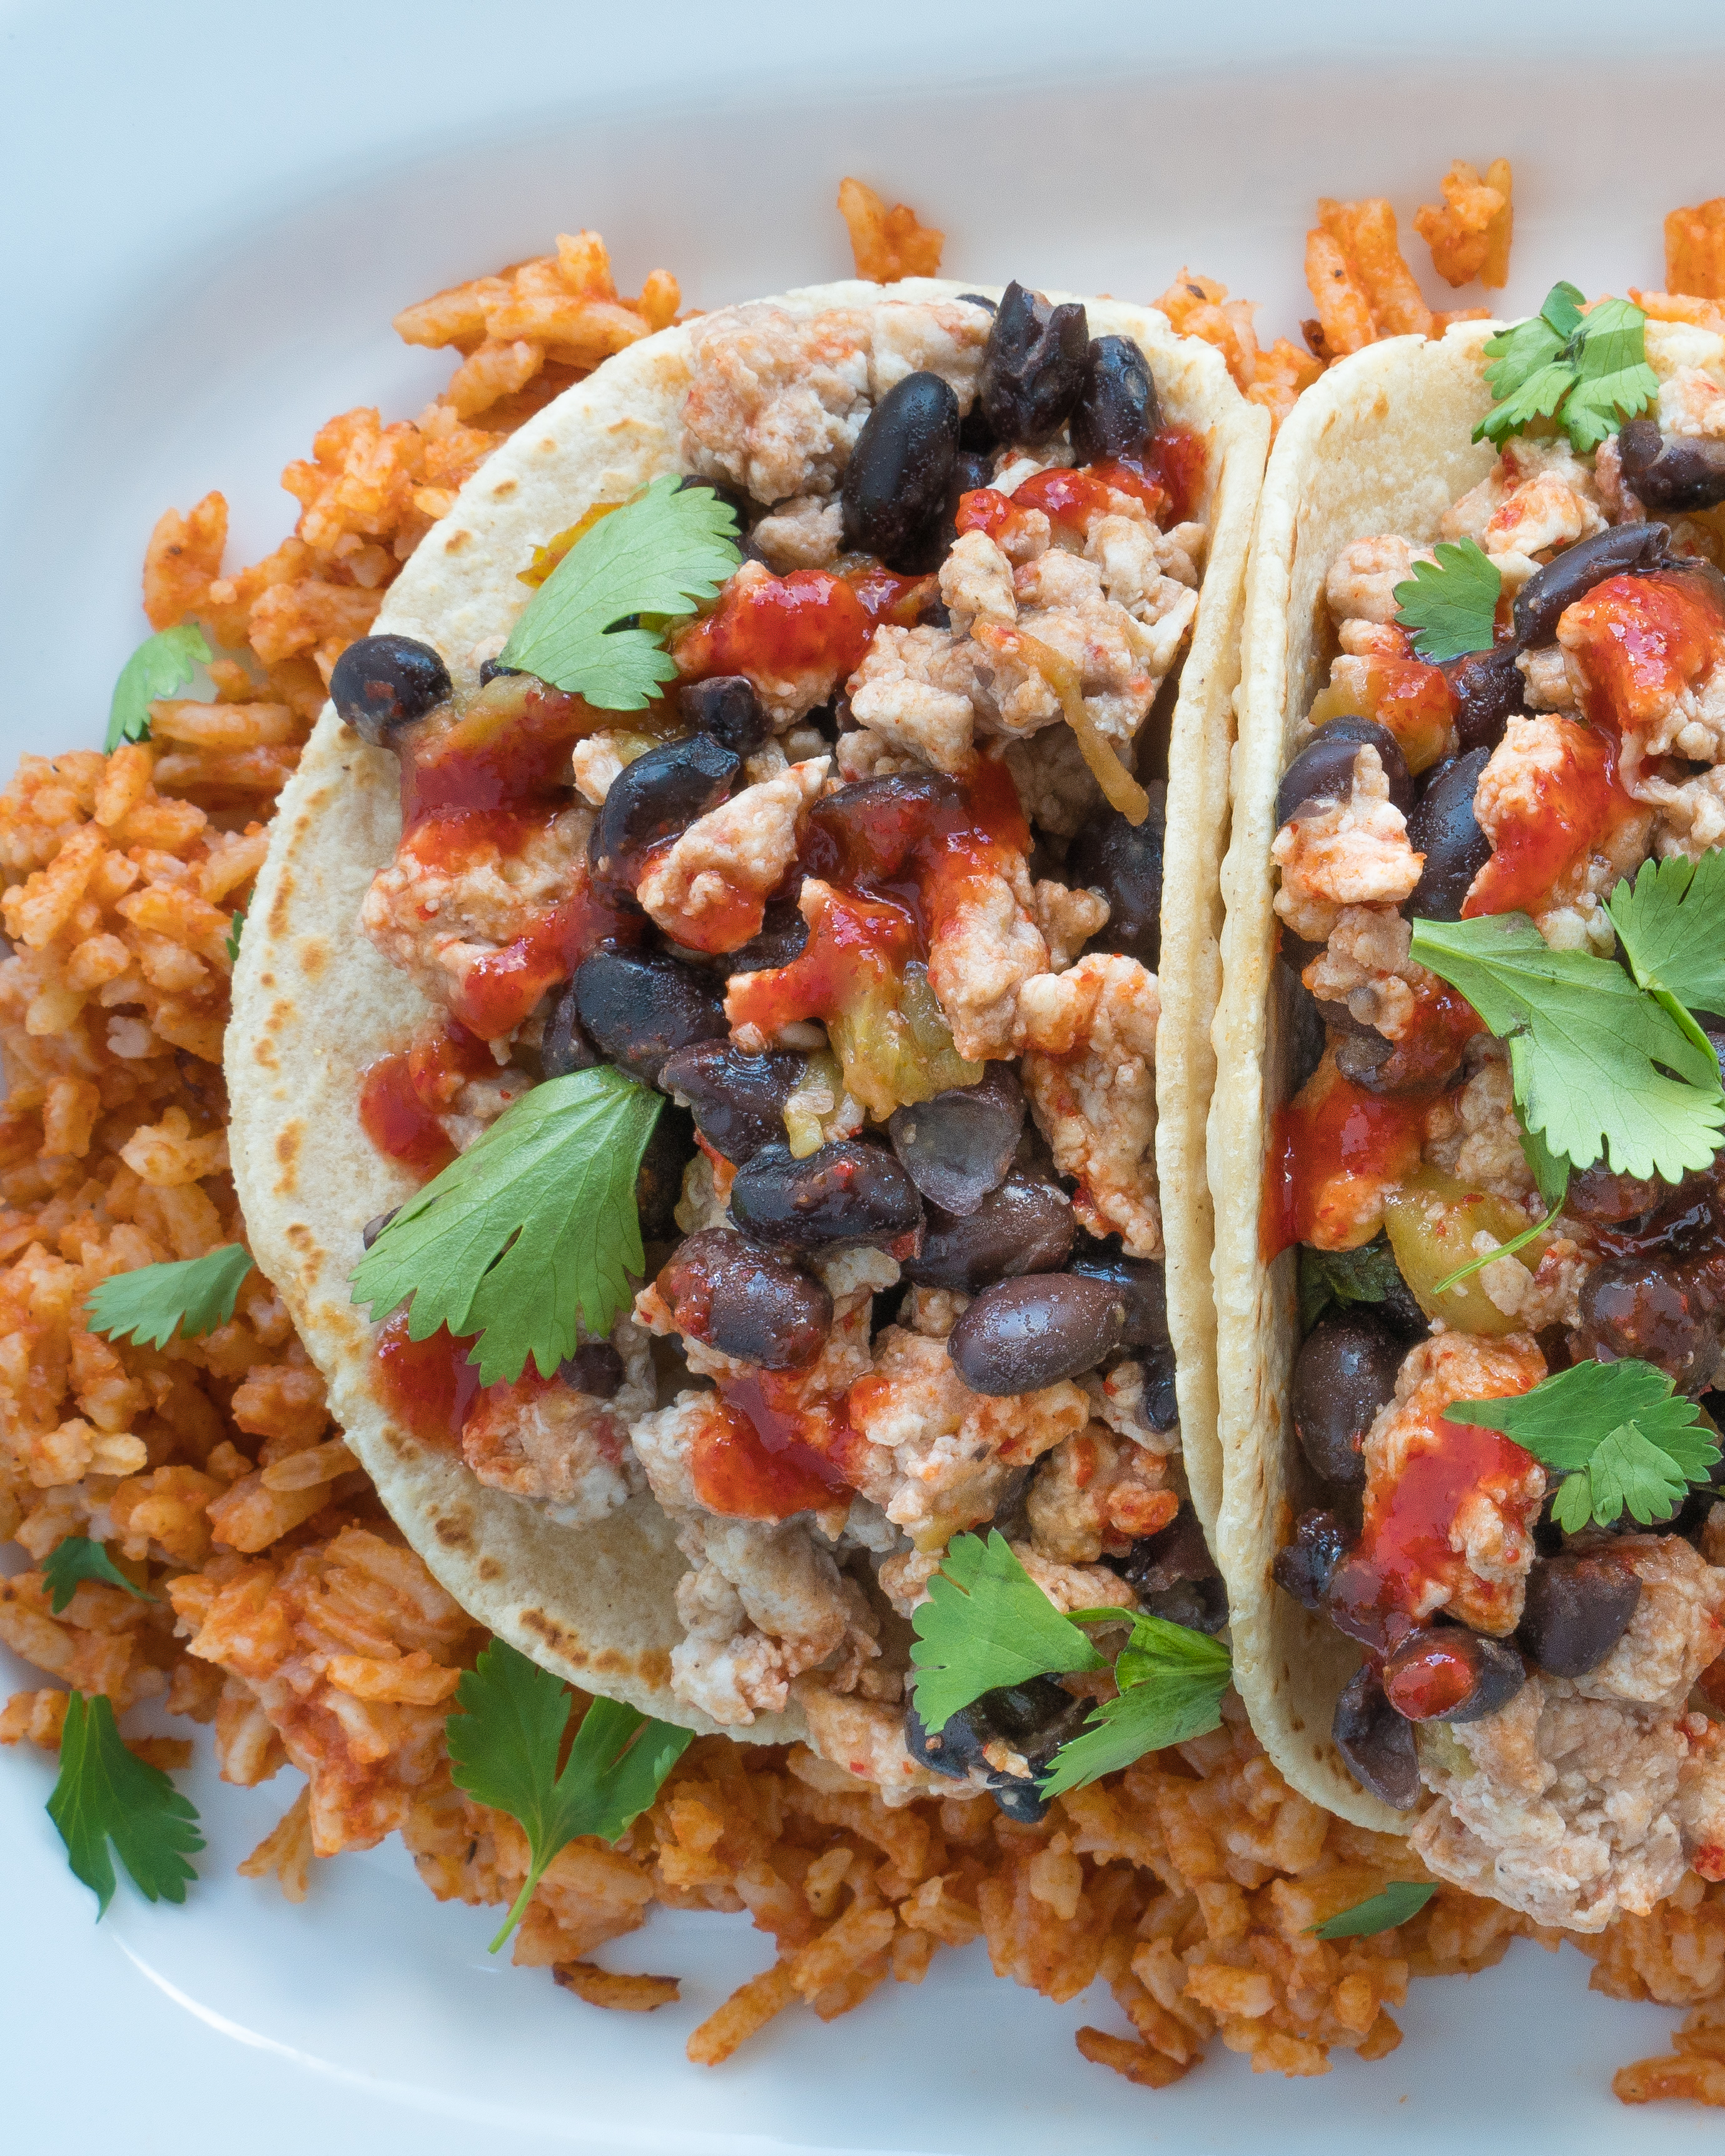 Southwestern Breakfast Tacos – Simple, healthy recipe for Southwestern Breakfast Tacos! This high-protein brunch dish uses egg whites, green hatch chiles, black beans, and shredded cheese with flavors of tomato, coriander, & chili garlic paste. We love that this gluten-free & vegetarian friendly recipe comes together in just 10 minutes! ♥ | freeyourfork.com